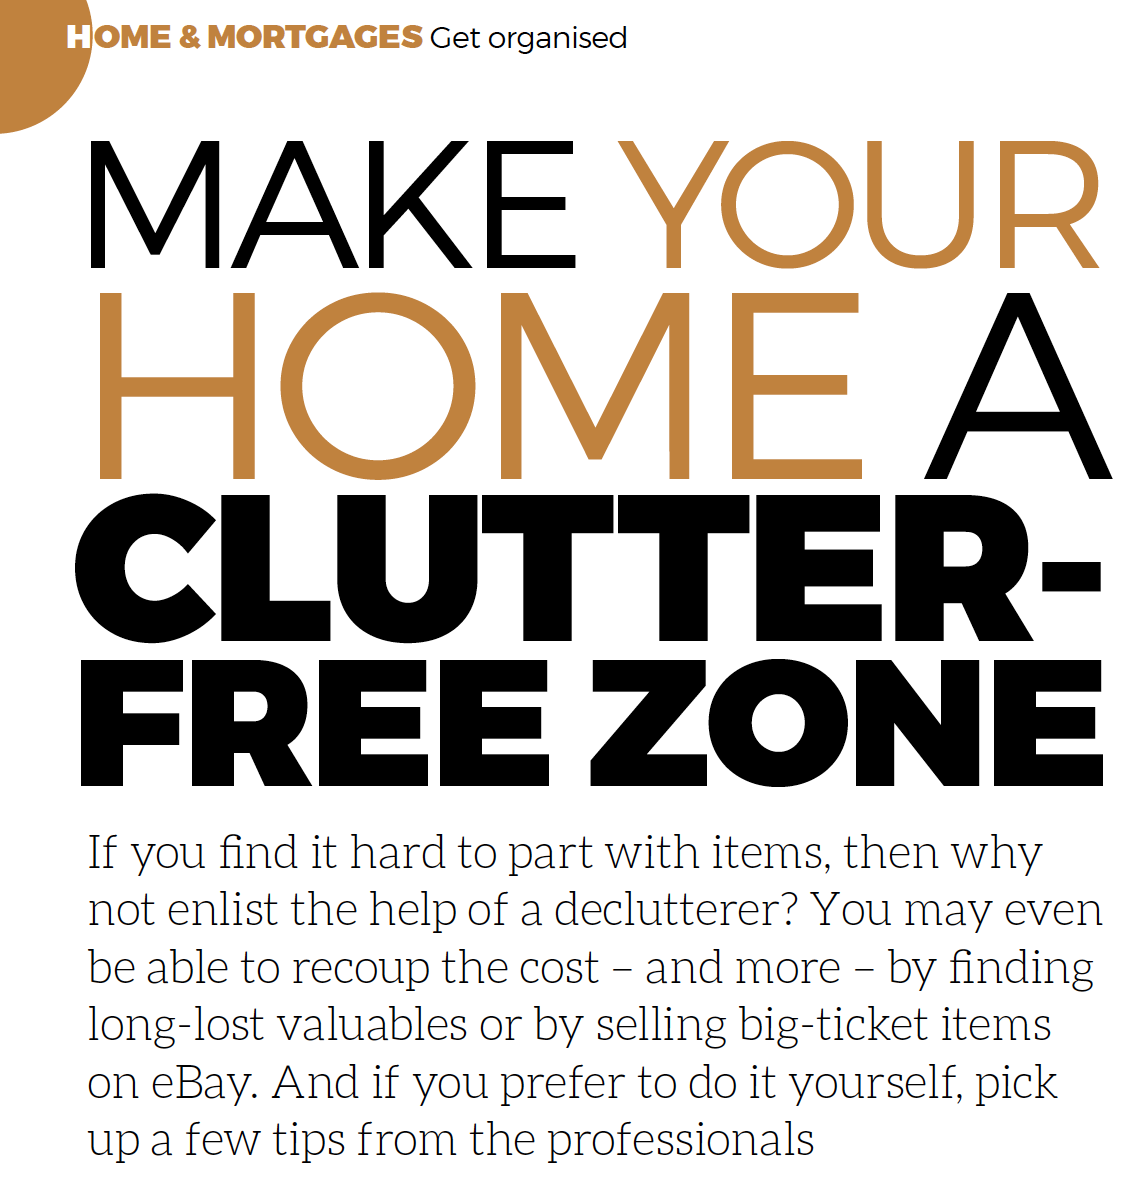 We were featured in a magazine recently! Click here to check us out!